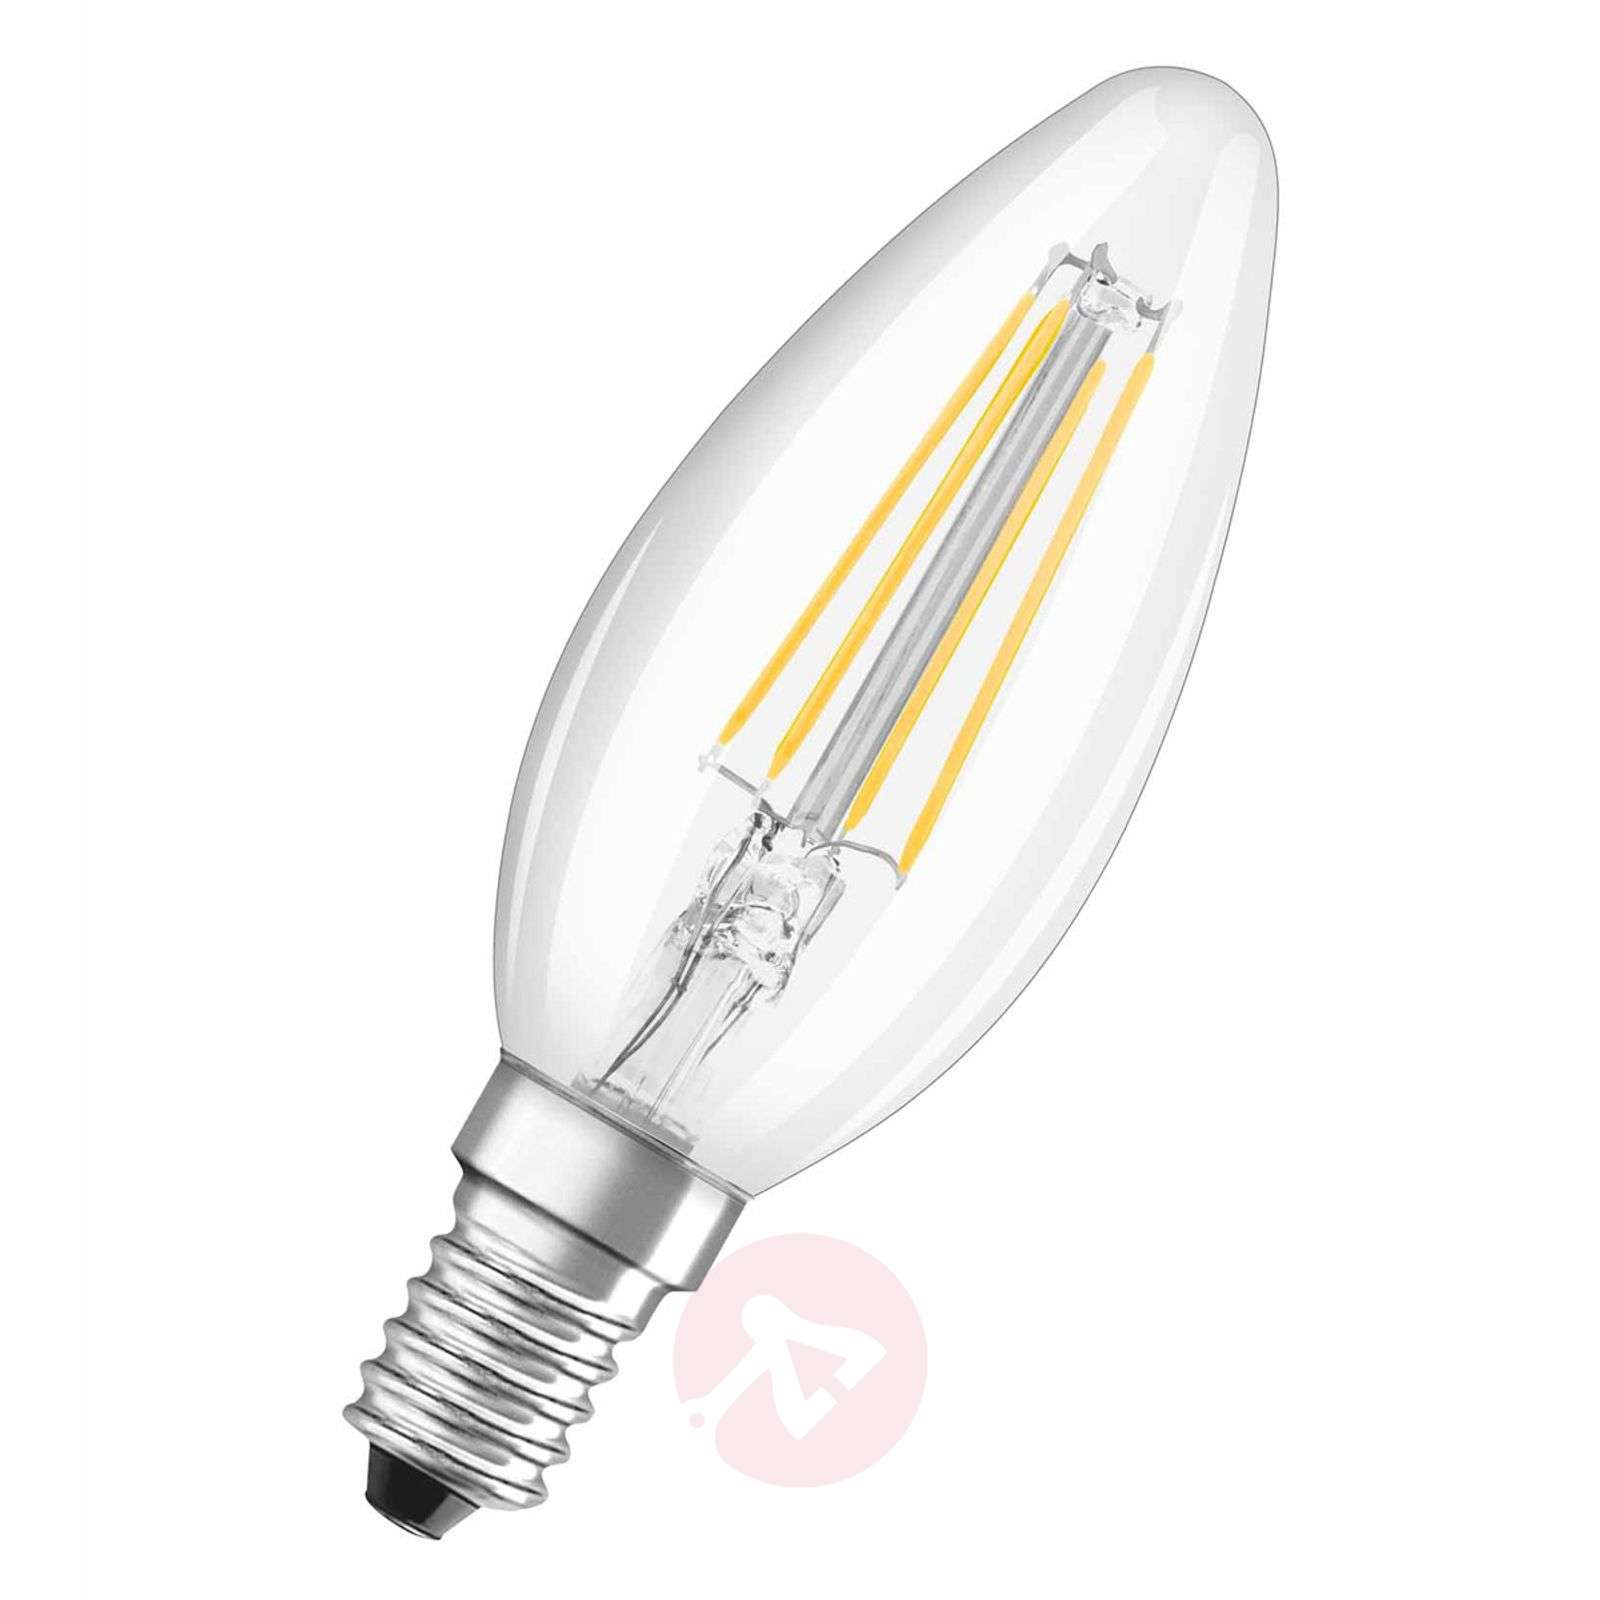 Ampoule flam. à filament LED E14 4 W 827, kit de 2-7260966-01